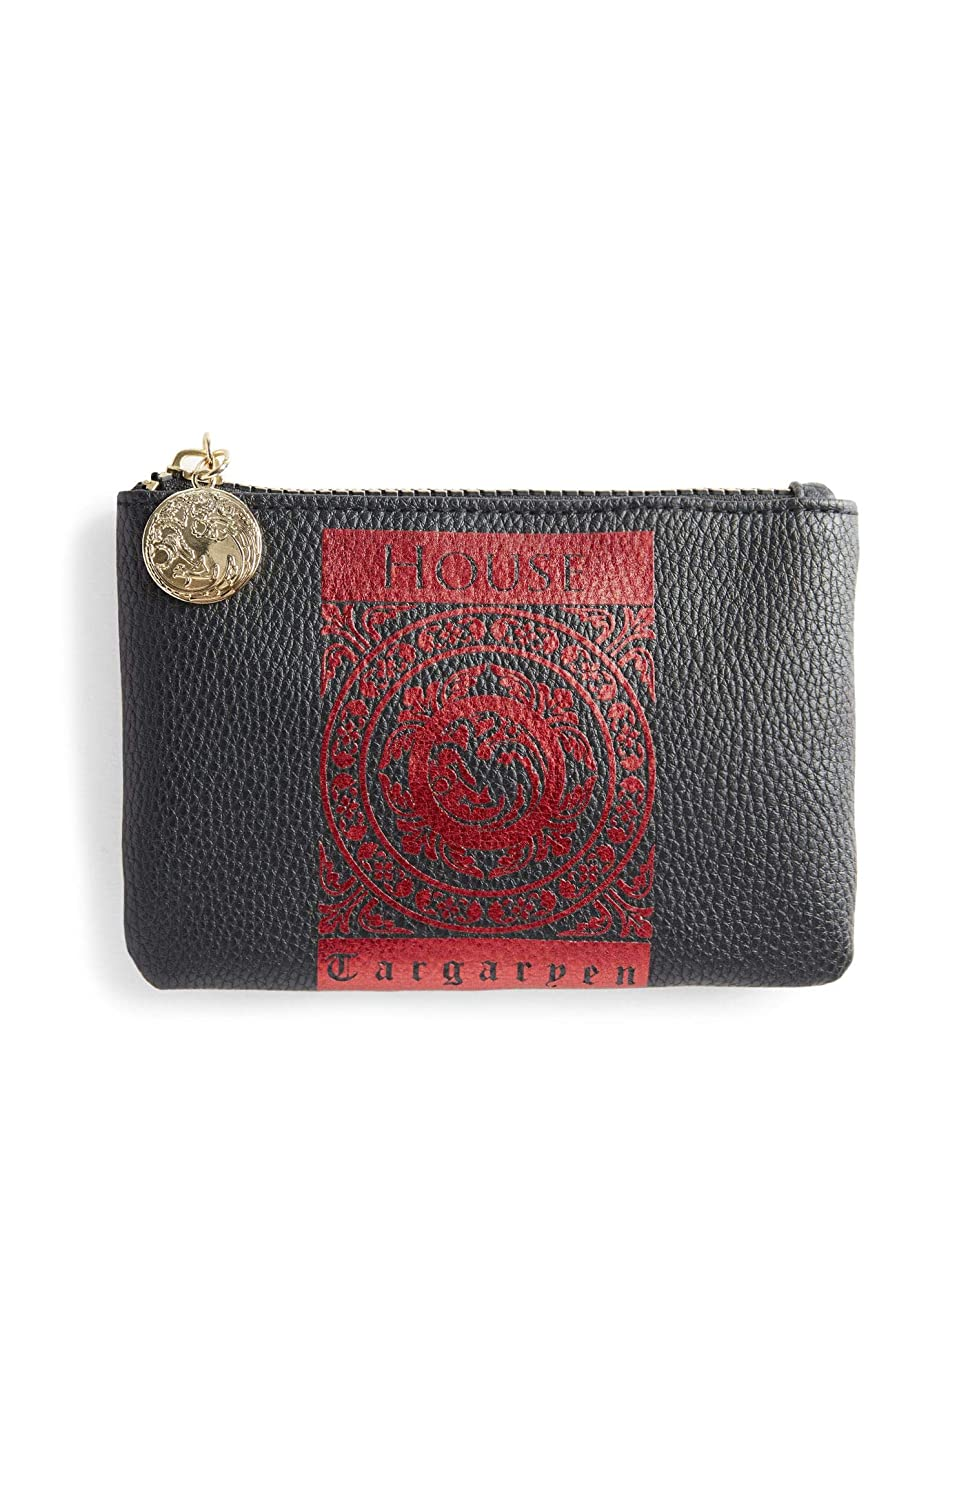 Primark - Game of Thrones Zip Purse - House Targaryen ...